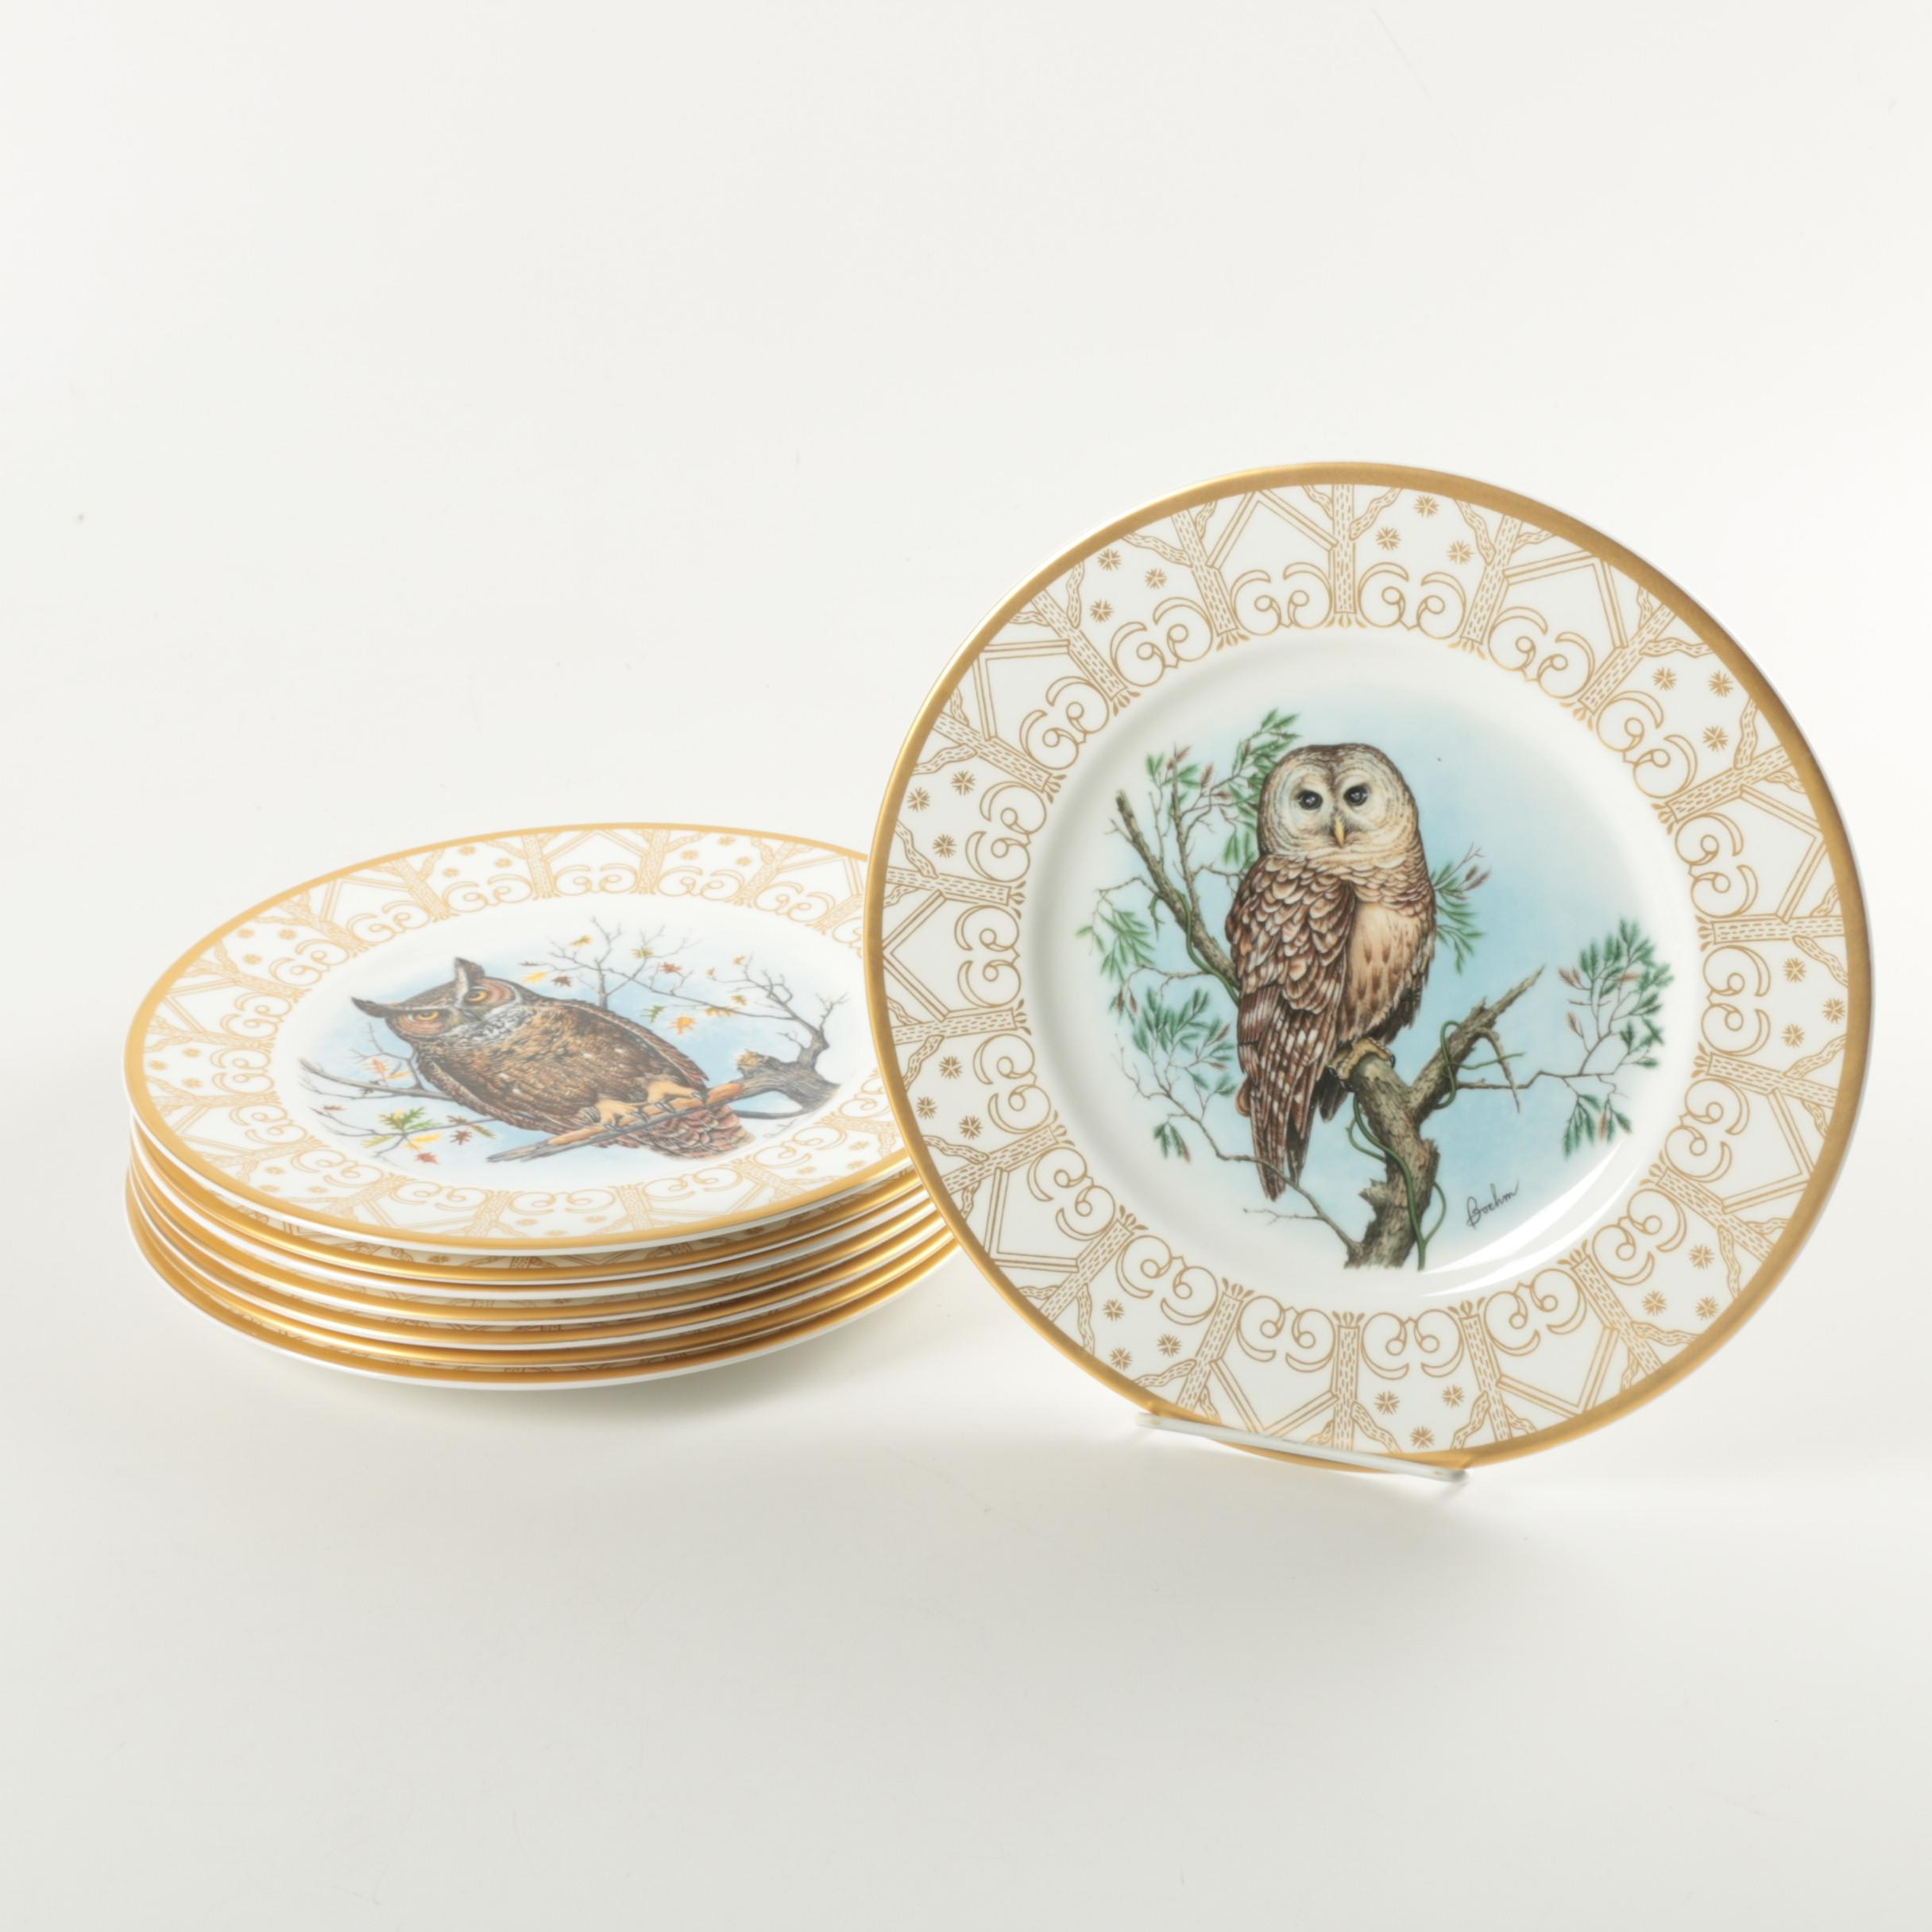 Edward Marshall Boehm Limited Edition Owl Plate Collection